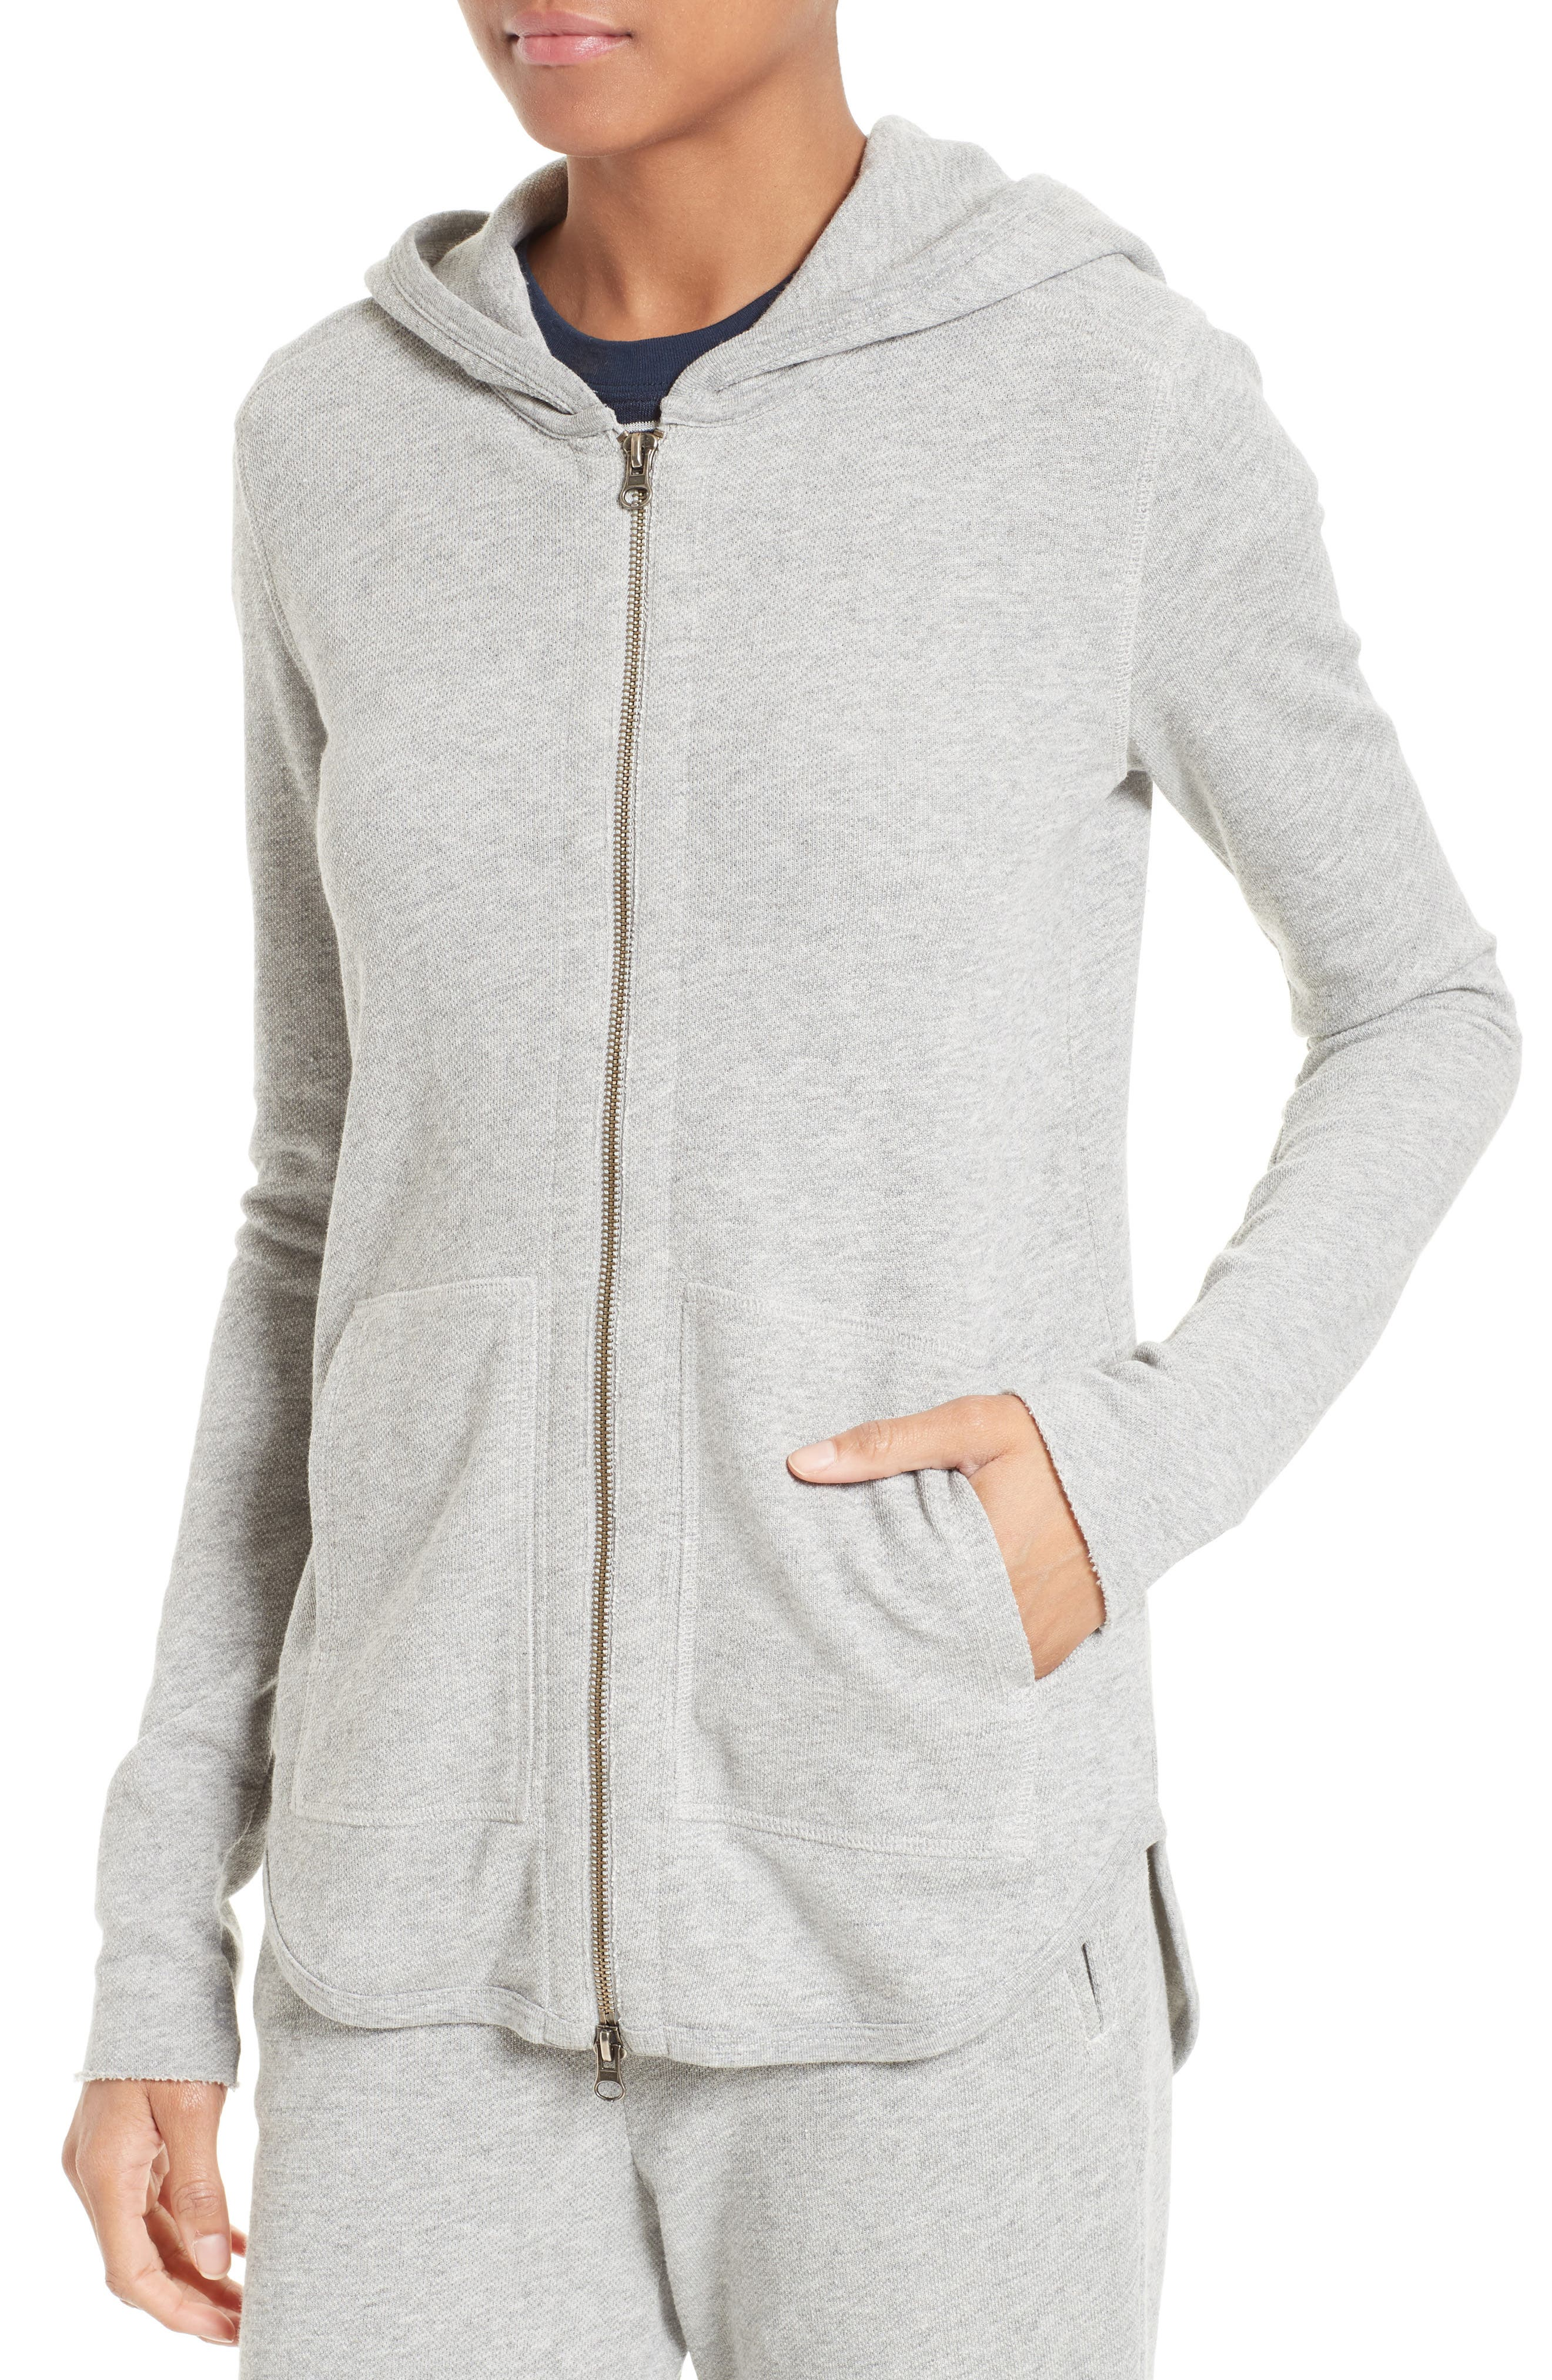 French Terry Zip Hoodie,                             Alternate thumbnail 4, color,                             050